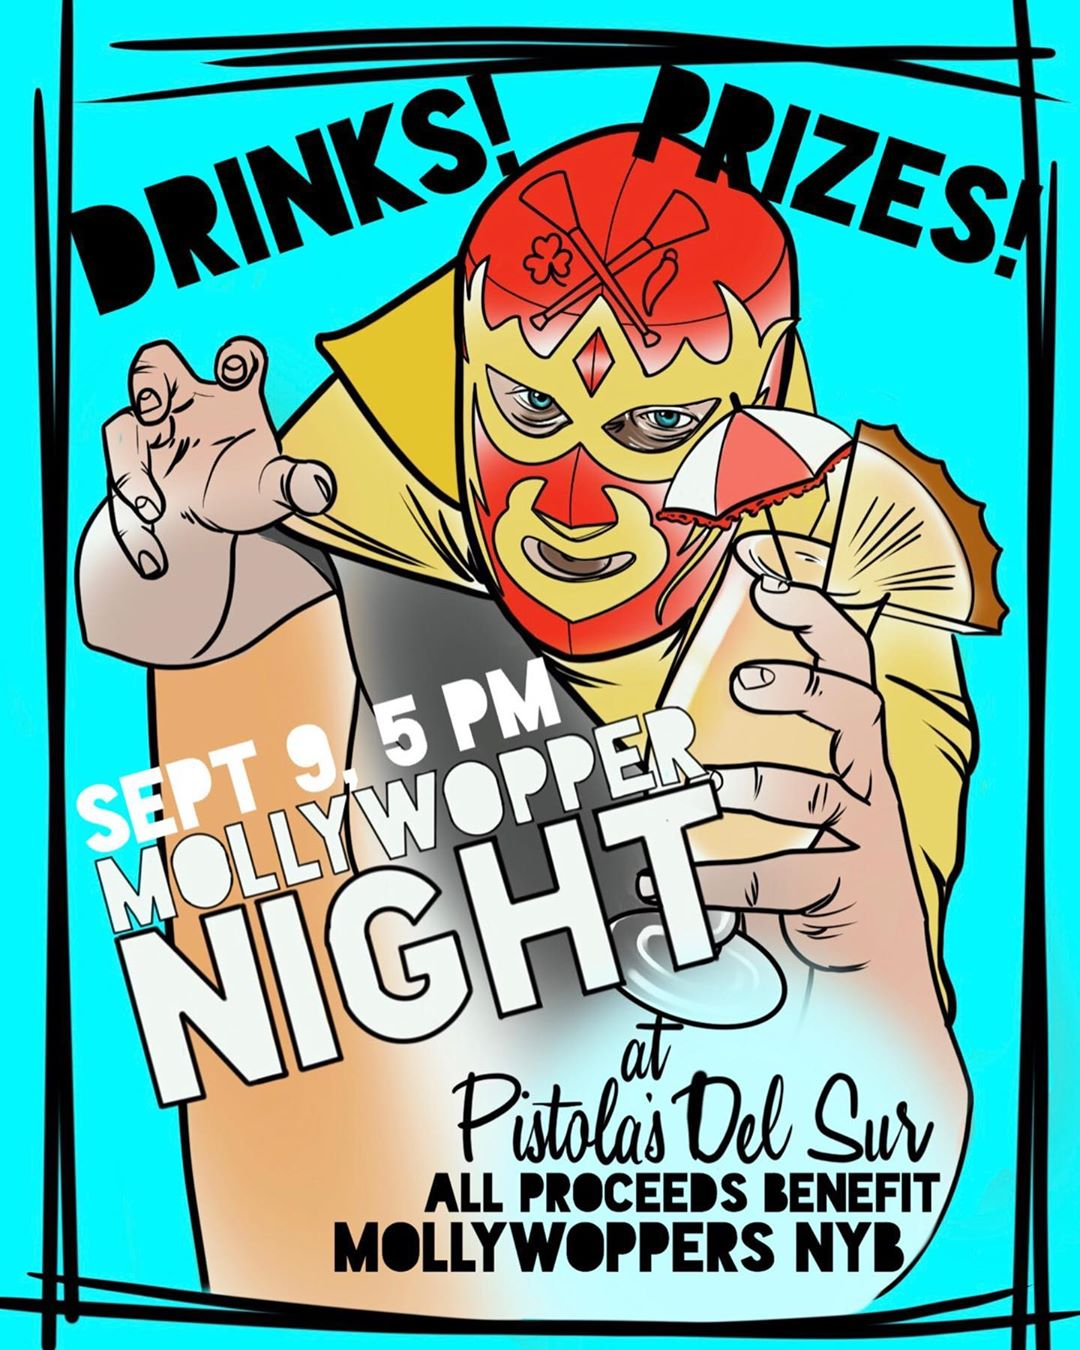 Come on out Monday Sept. 9th! @pistolasdelsur for @mollywoppersnyb night!